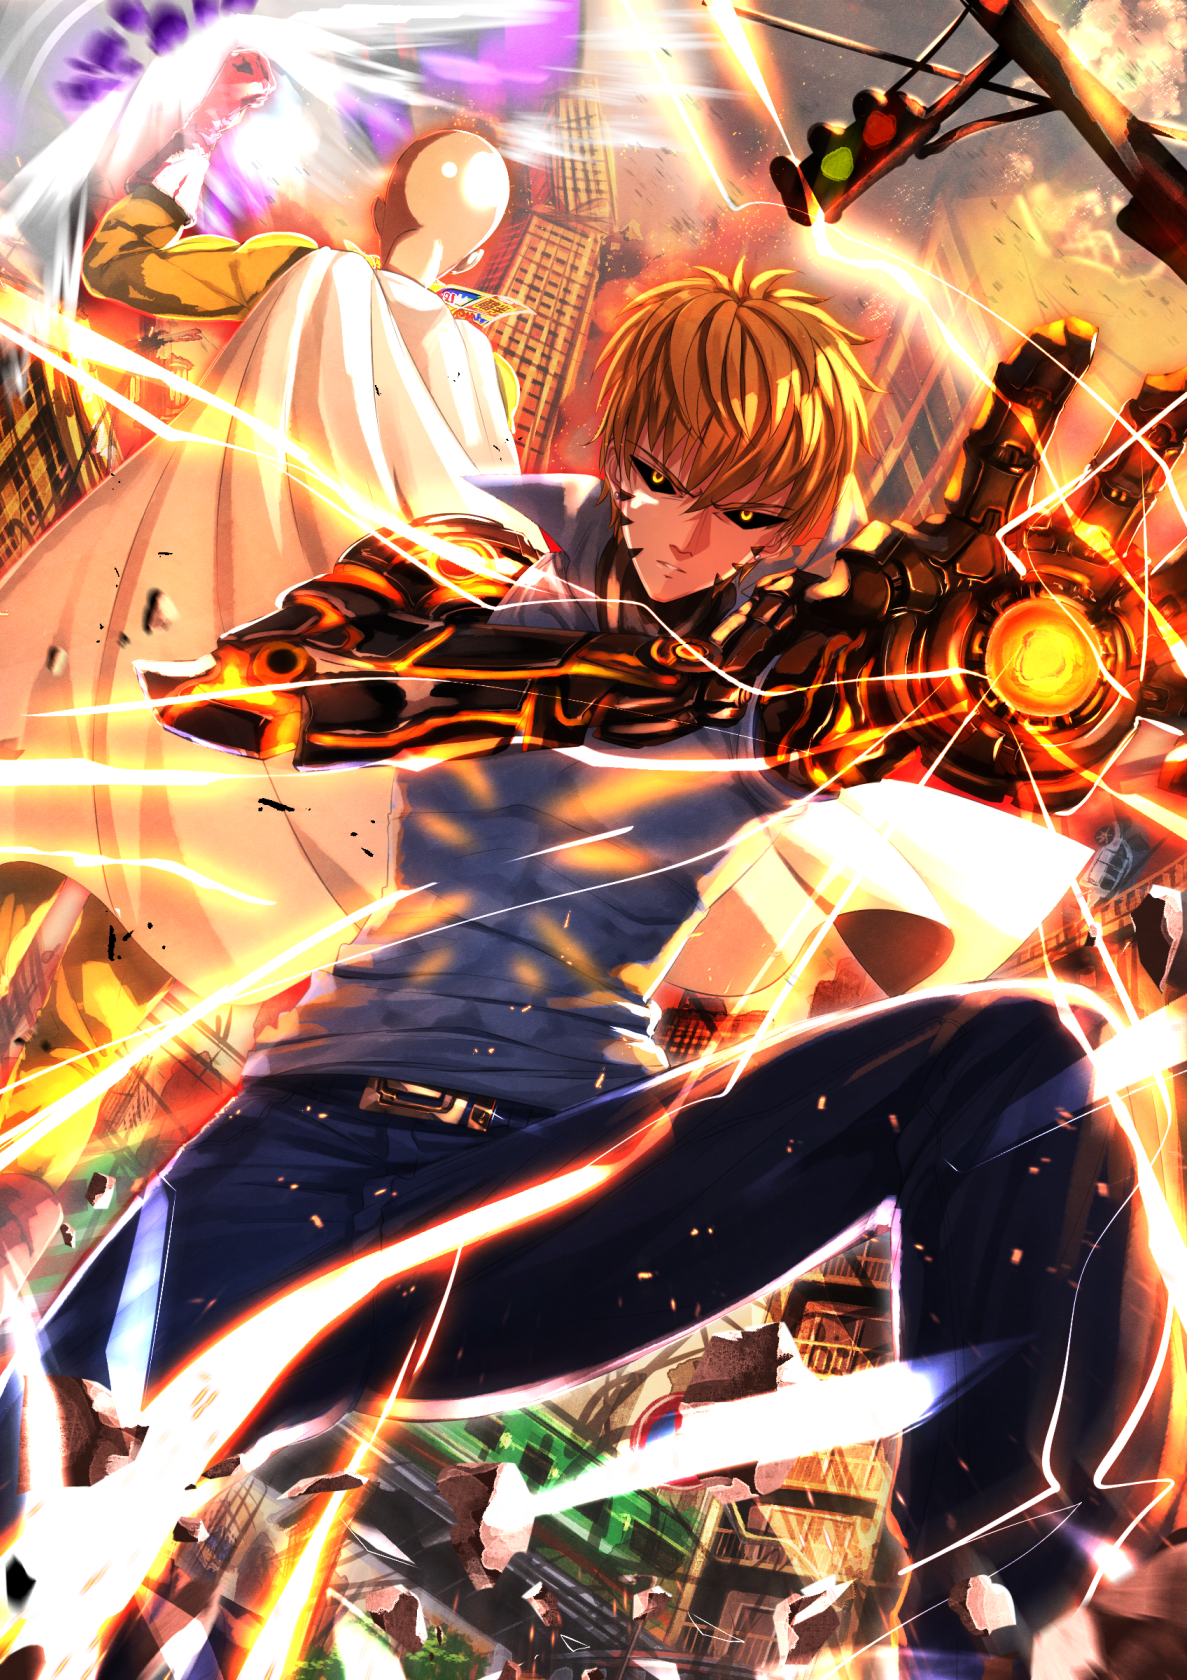 Simple Wallpaper Android One Punch Man - eccf8b062c32371723c958e783dcde83  Pic_64236      .png